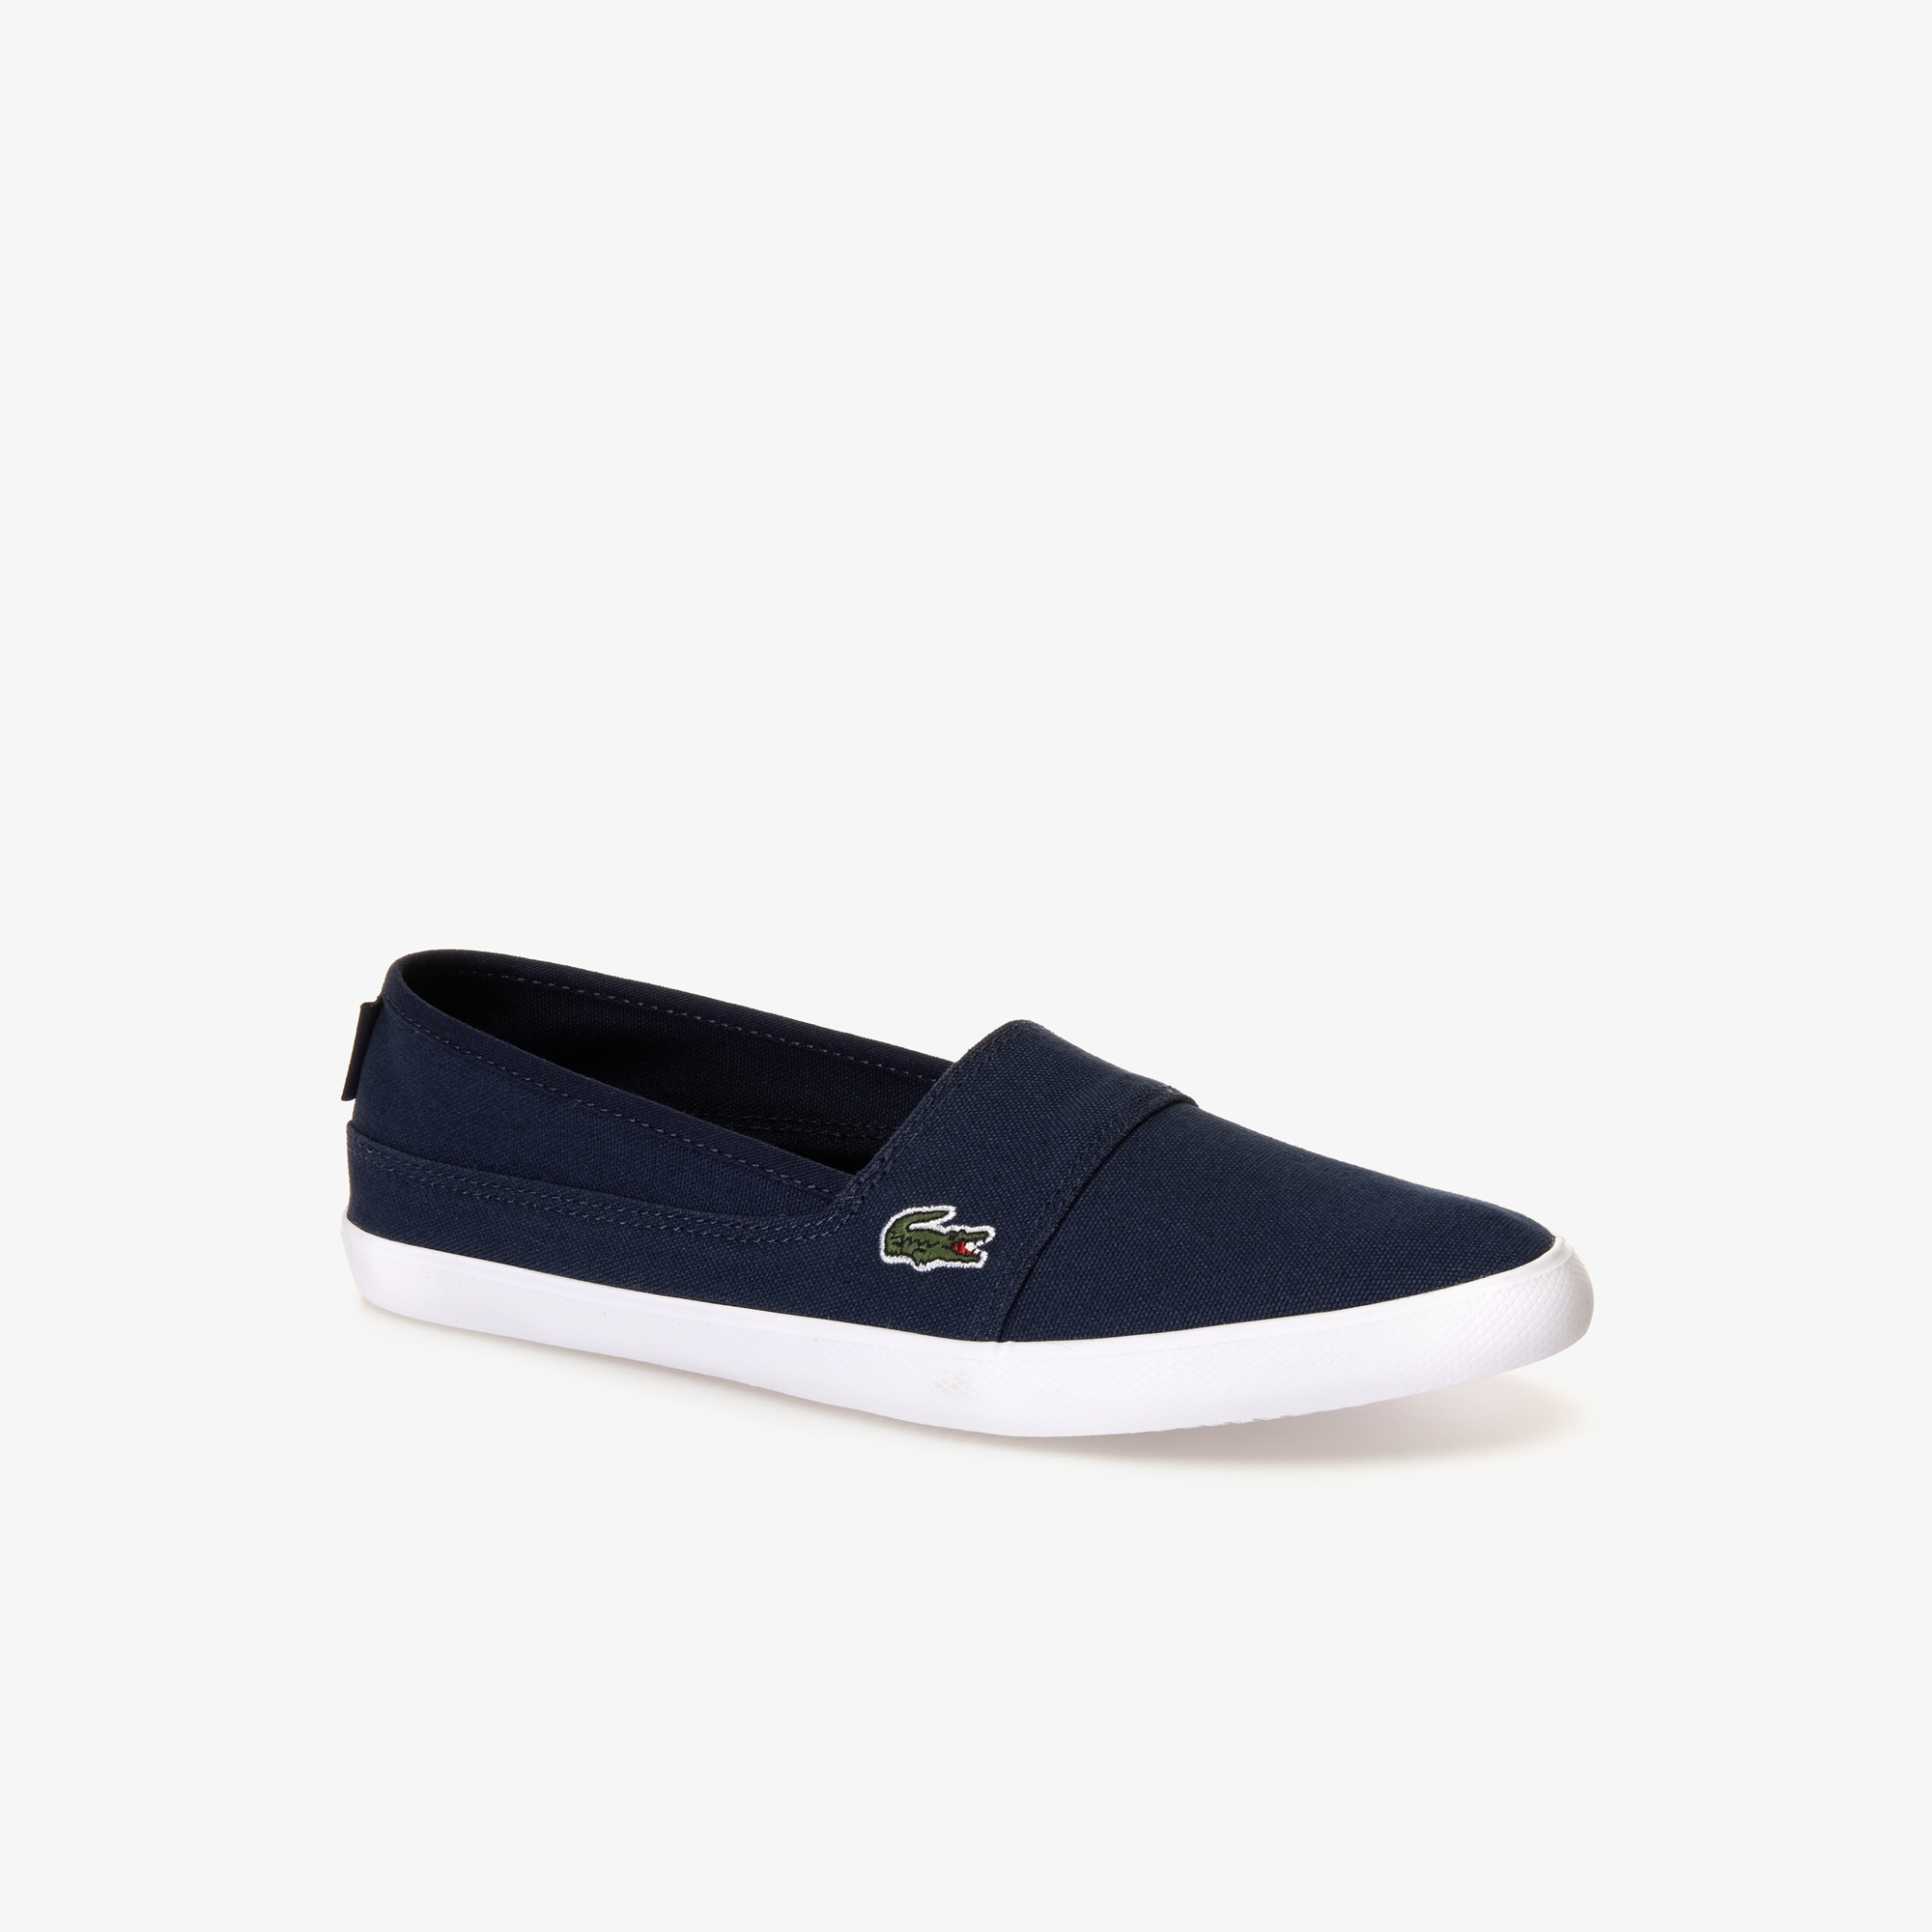 b3f8a8fcc9 Women's Marice Bl Canvas Slip-Ons in Nvy